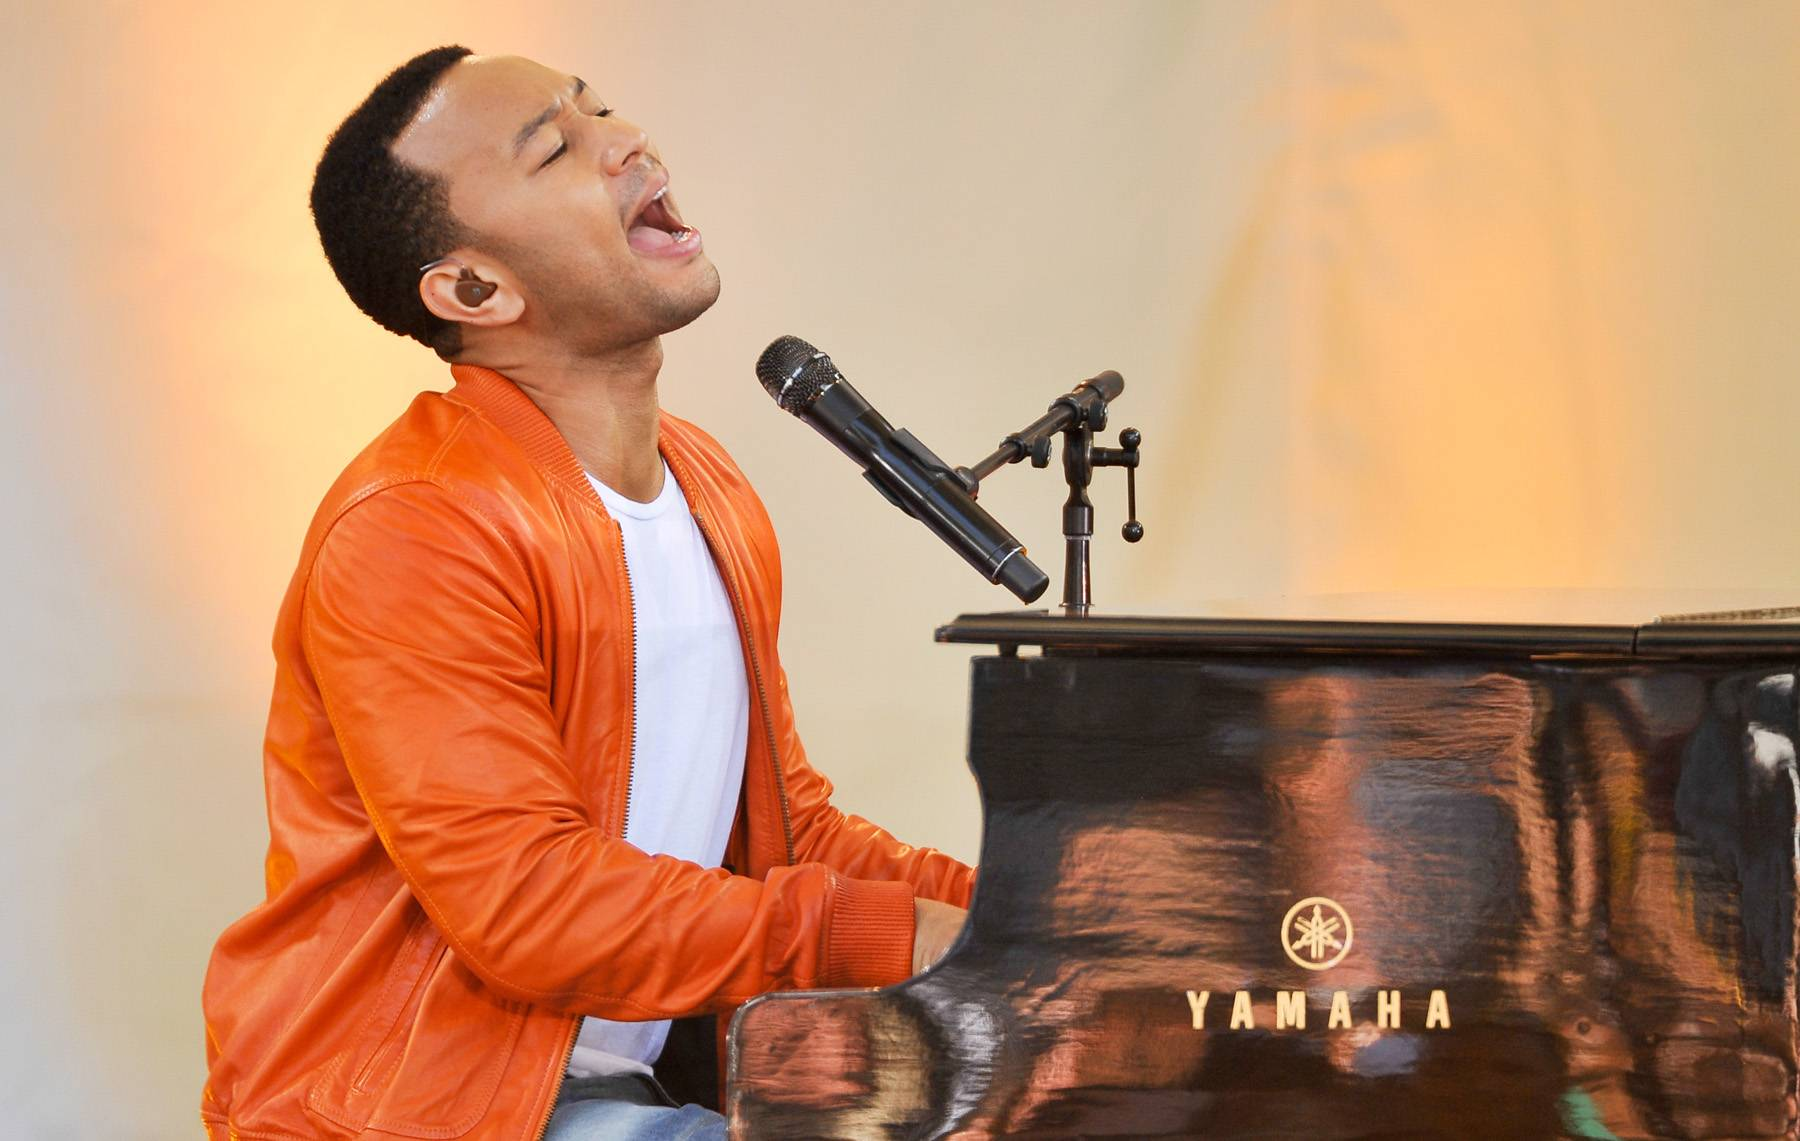 All of Me Tour - John Legend will be giving his all in soulful harmonies for an intimate acoustic concert set. The unplugged show will be a winner for the coupled up who want to share in the romance of Legend's recent nuptials.To plan that magical summer night, go towww.johnlegend.com.Photo: D Dipasupil/Getty Images)